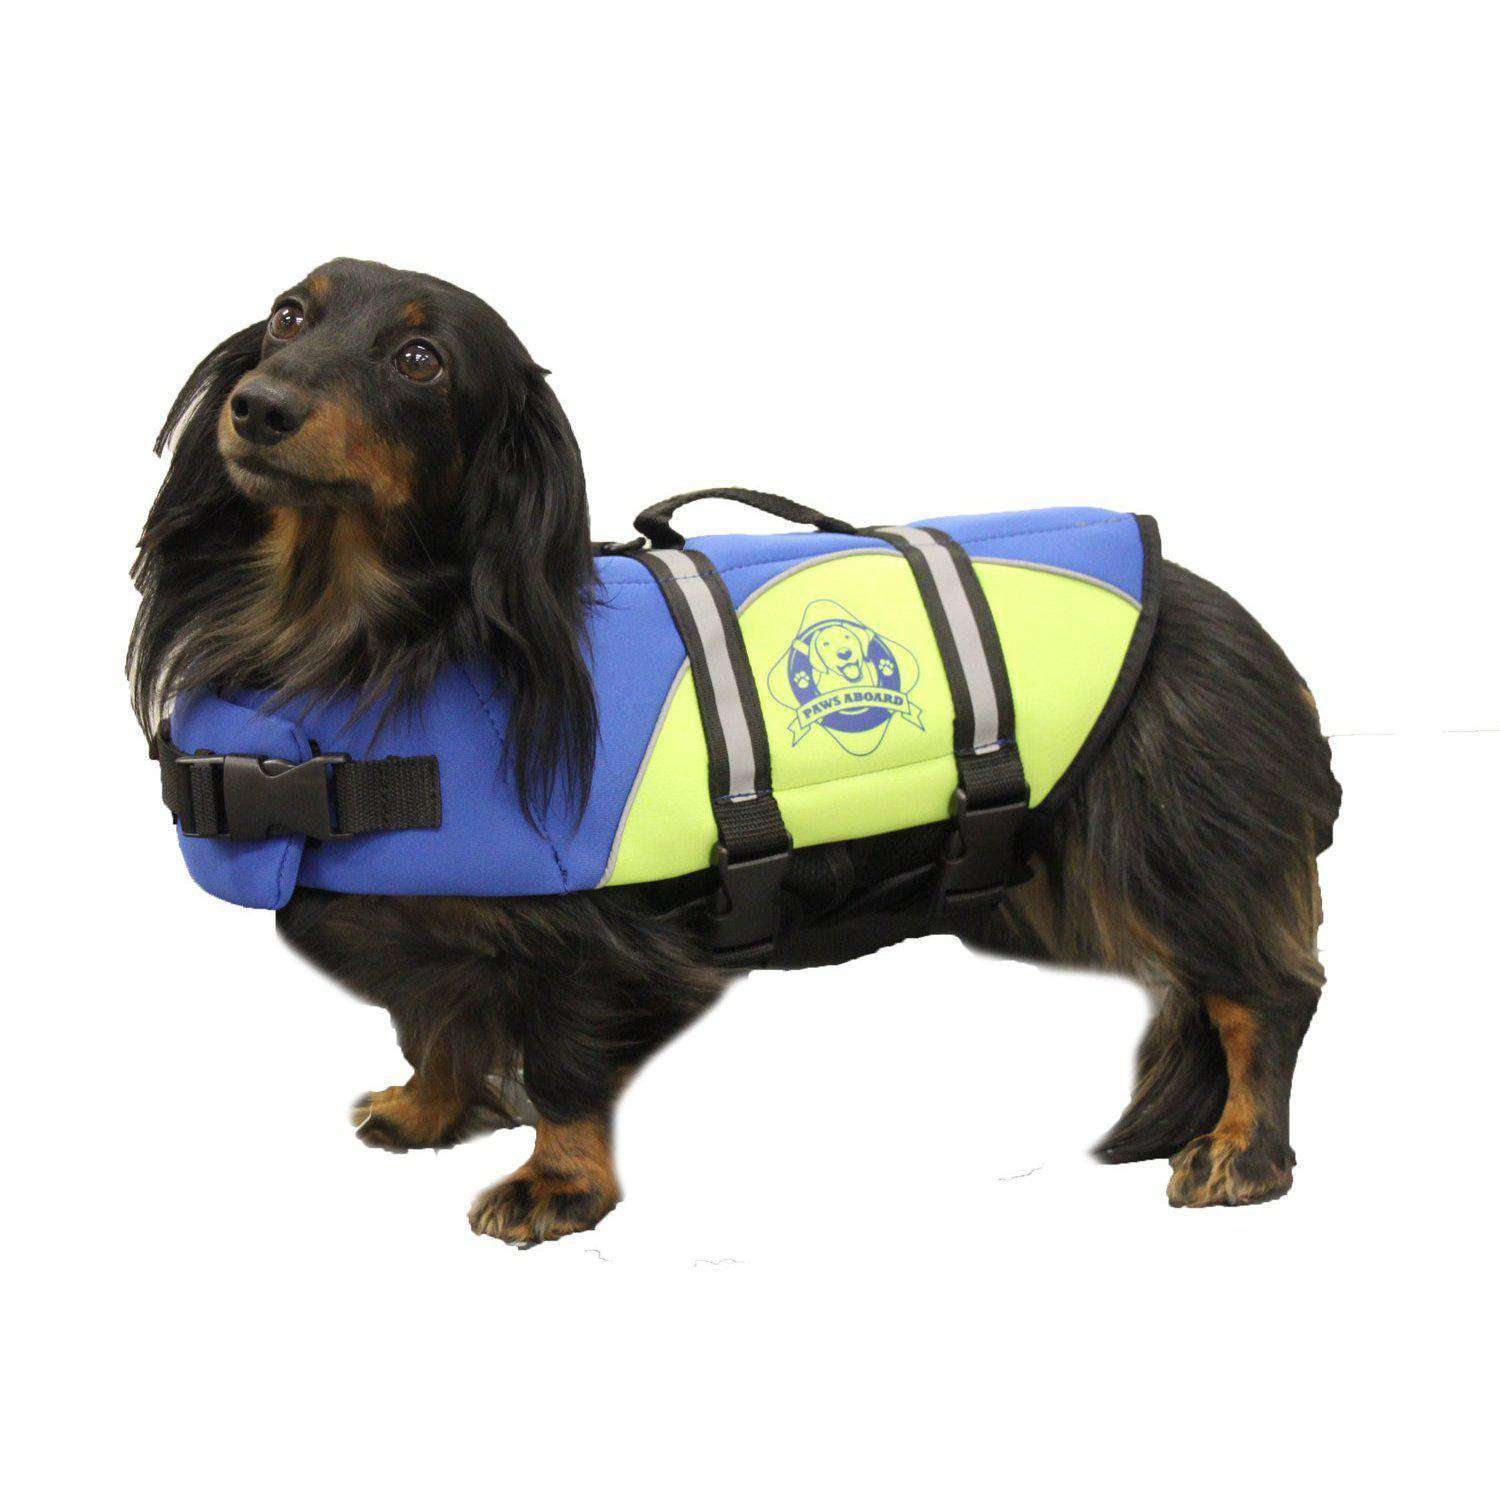 Paws Aboard Extra Small Neoprene Designer Doggy Blue - Yellow Life Guard - Jacket Upto 7-15 Lbs-Paws Aboard-DirtyFurClothing